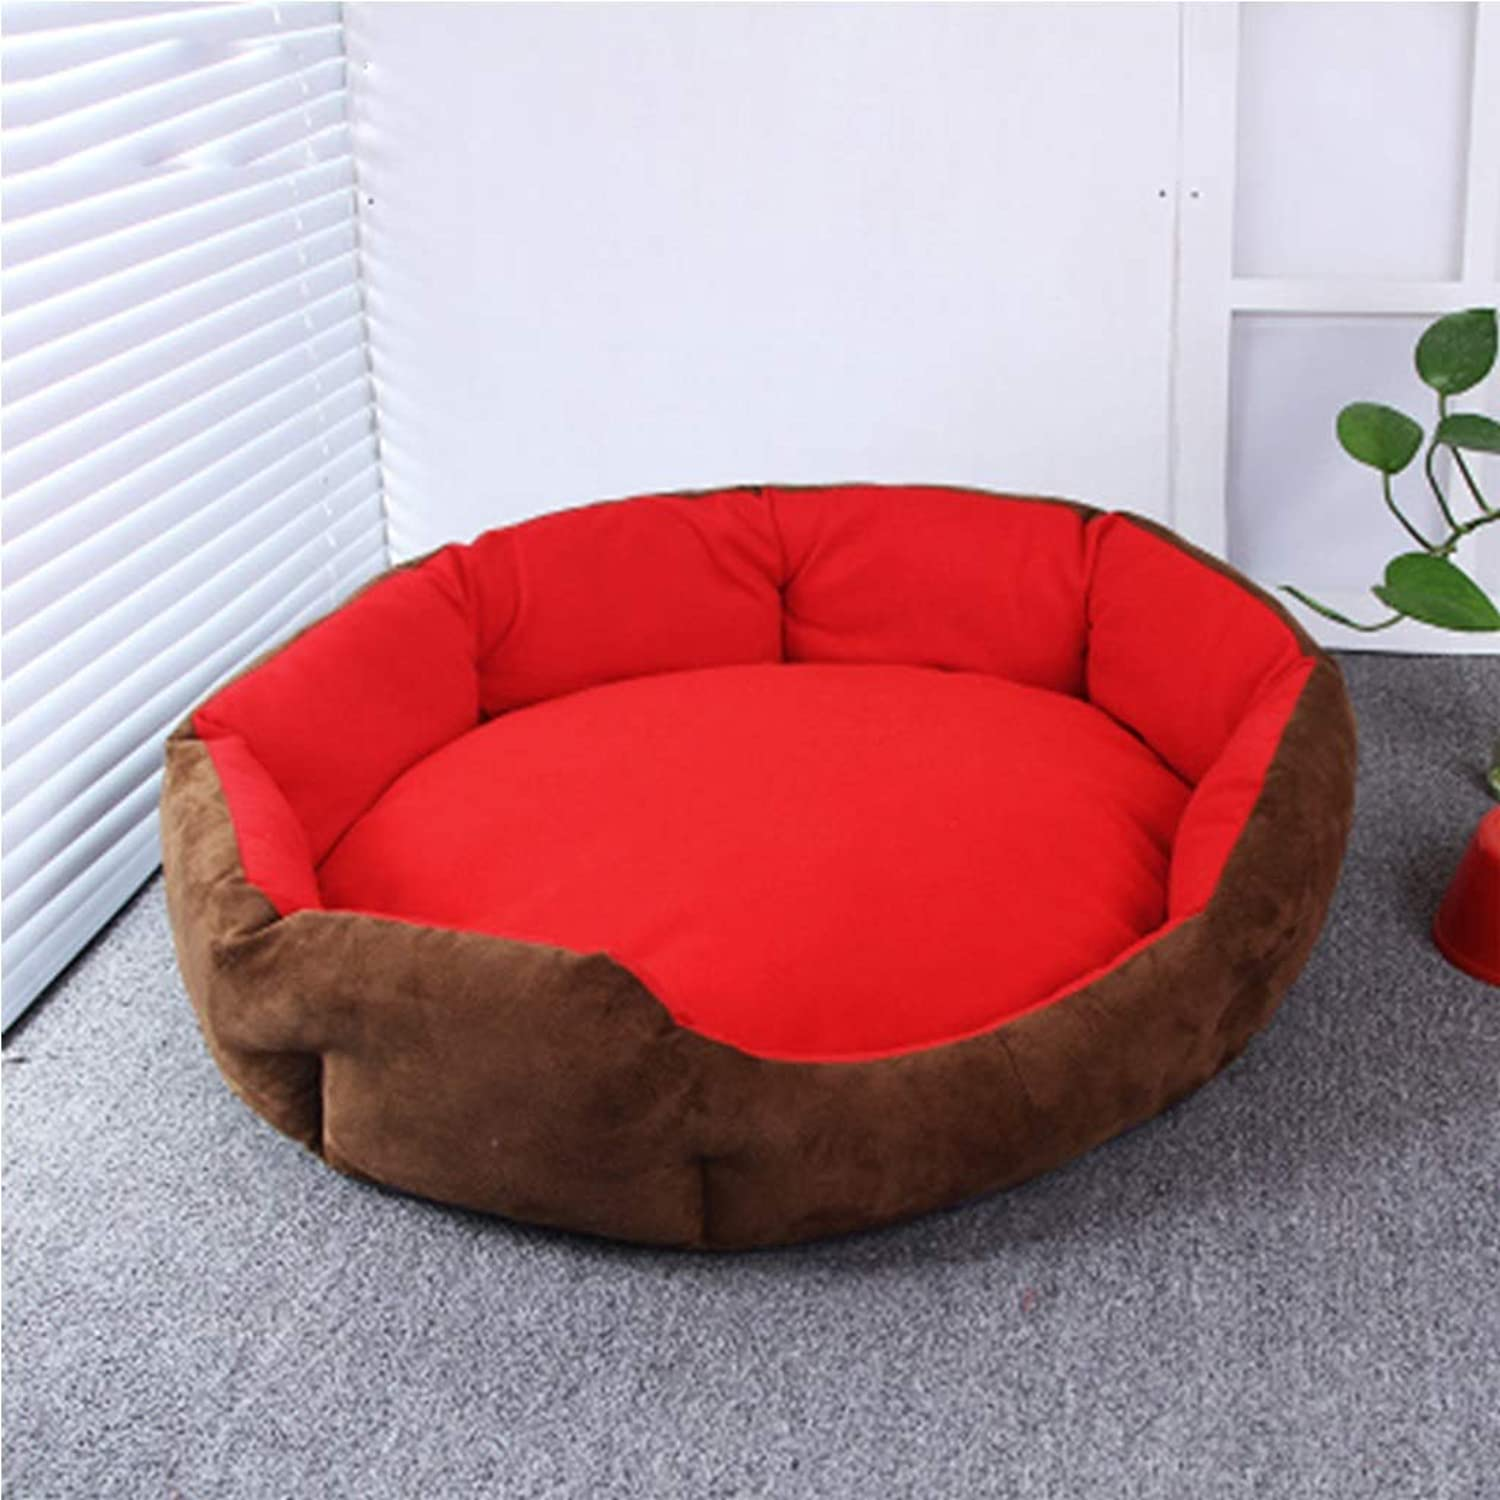 Dogs Beds Furniture Bed Blankets Pet Products, Kennels, Removable and Washable, Four Seasons, Pet nest, Cat Litter, Small Dog Kennel, Dog Bed, Dog House, Cushion (color   Red, Size   L)